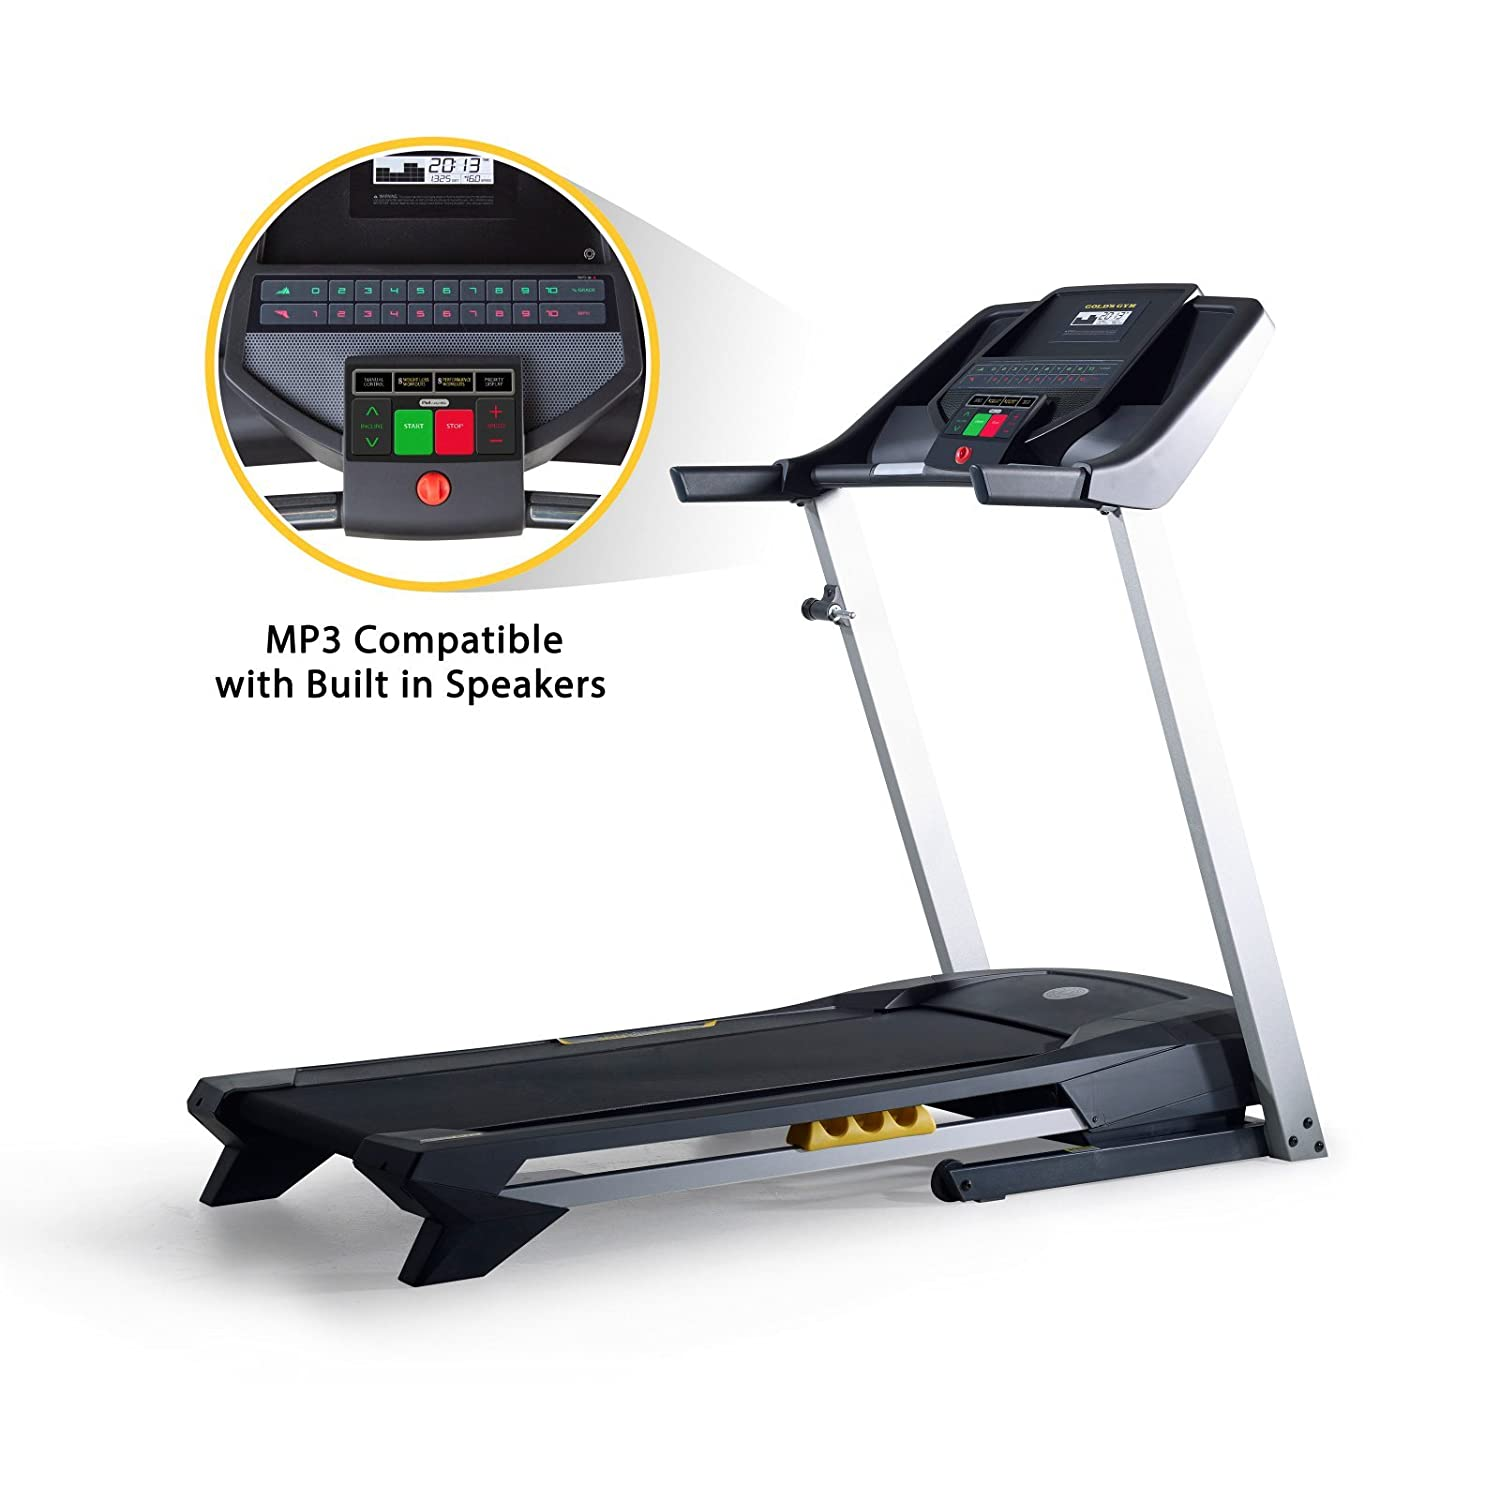 Amazon.com : Golds Gym GGTL39613 Trainer 420 Treadmill : Sports & Outdoors